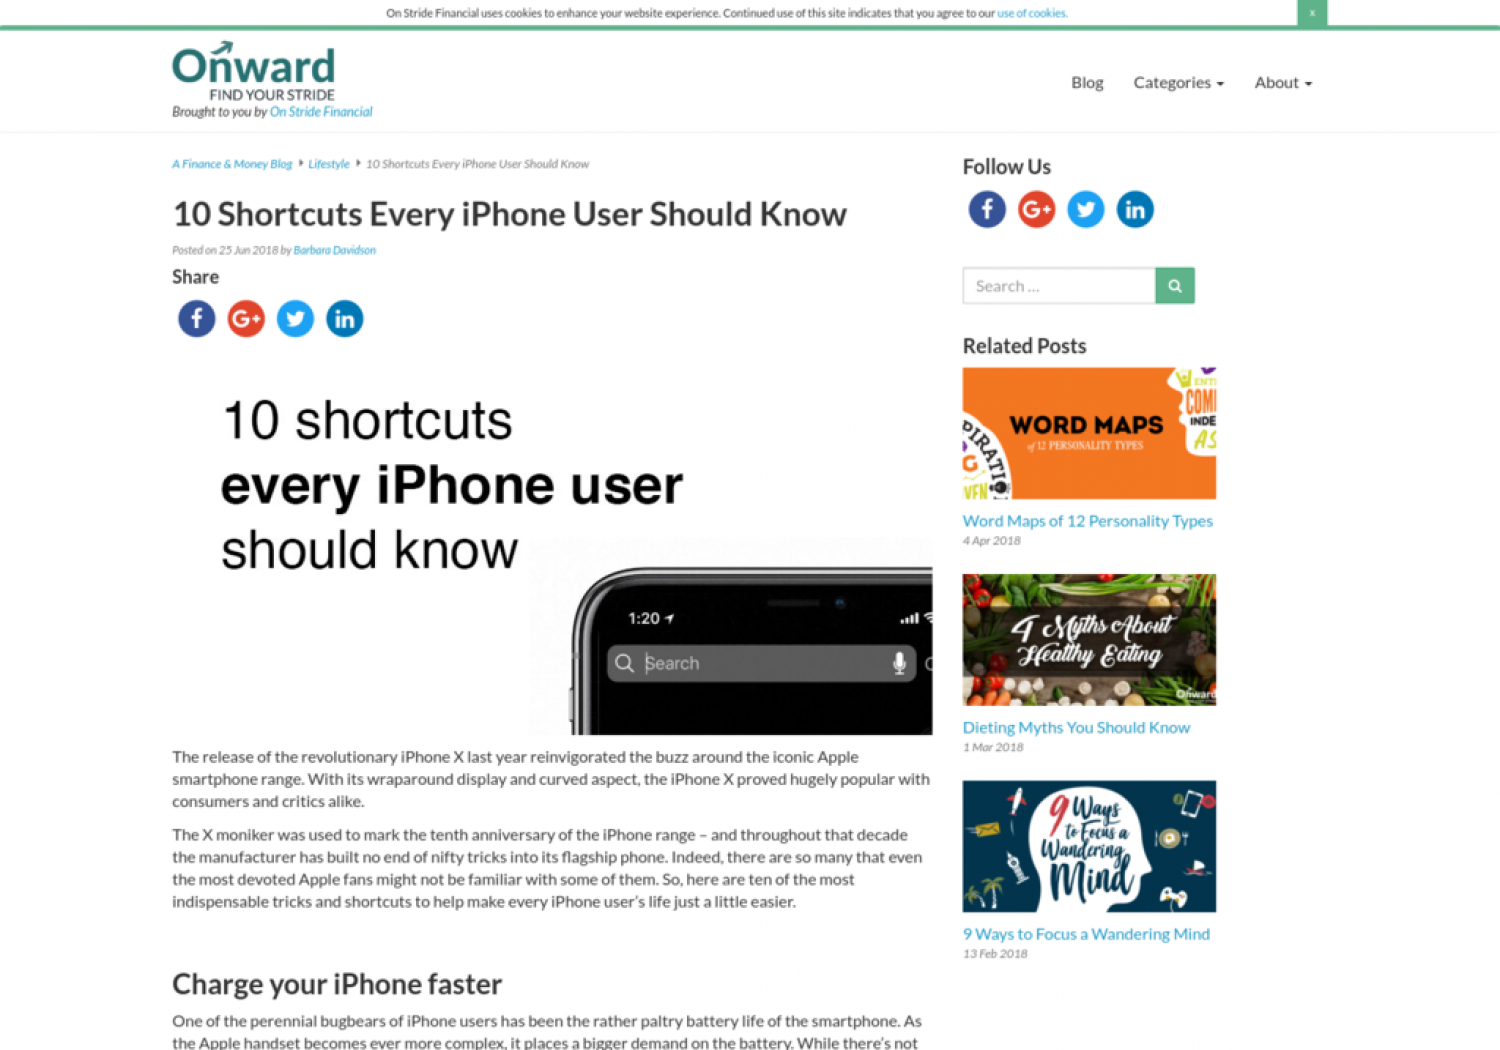 10 Shortcuts Every iPhone User Should Know Infographic